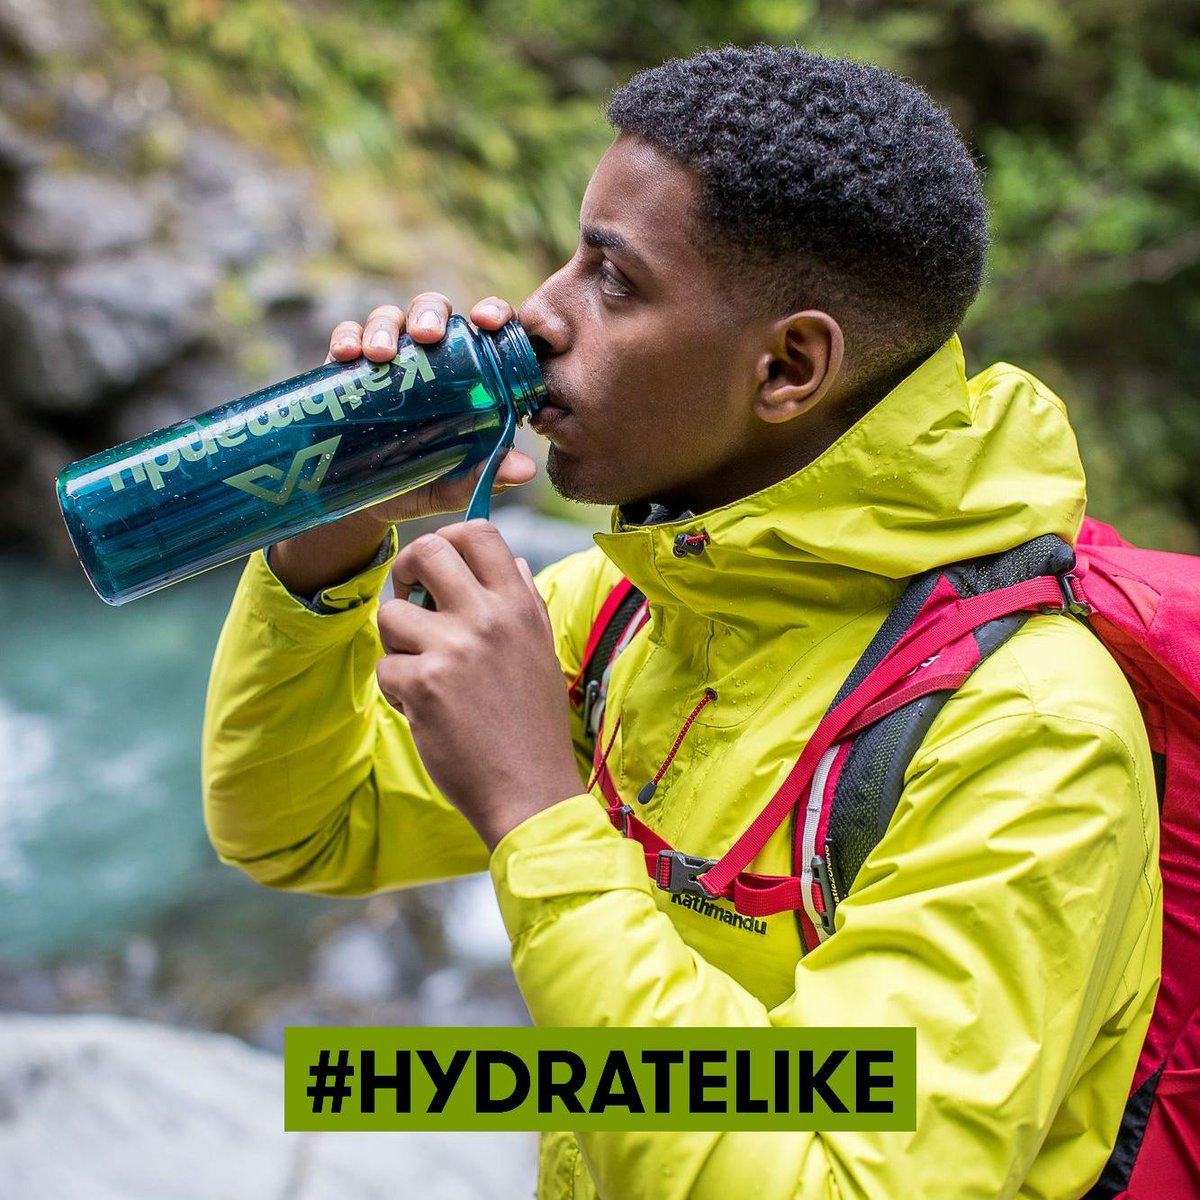 #HydrateLike you're a helpful traveller. Whether you're on holiday, hiking, working out or hanging out - adopt reusable bottles and limit single-use plastics that have a detrimental effect on the environment. Join the movement with our friends @SustainableCoastlines @LonelyWhale